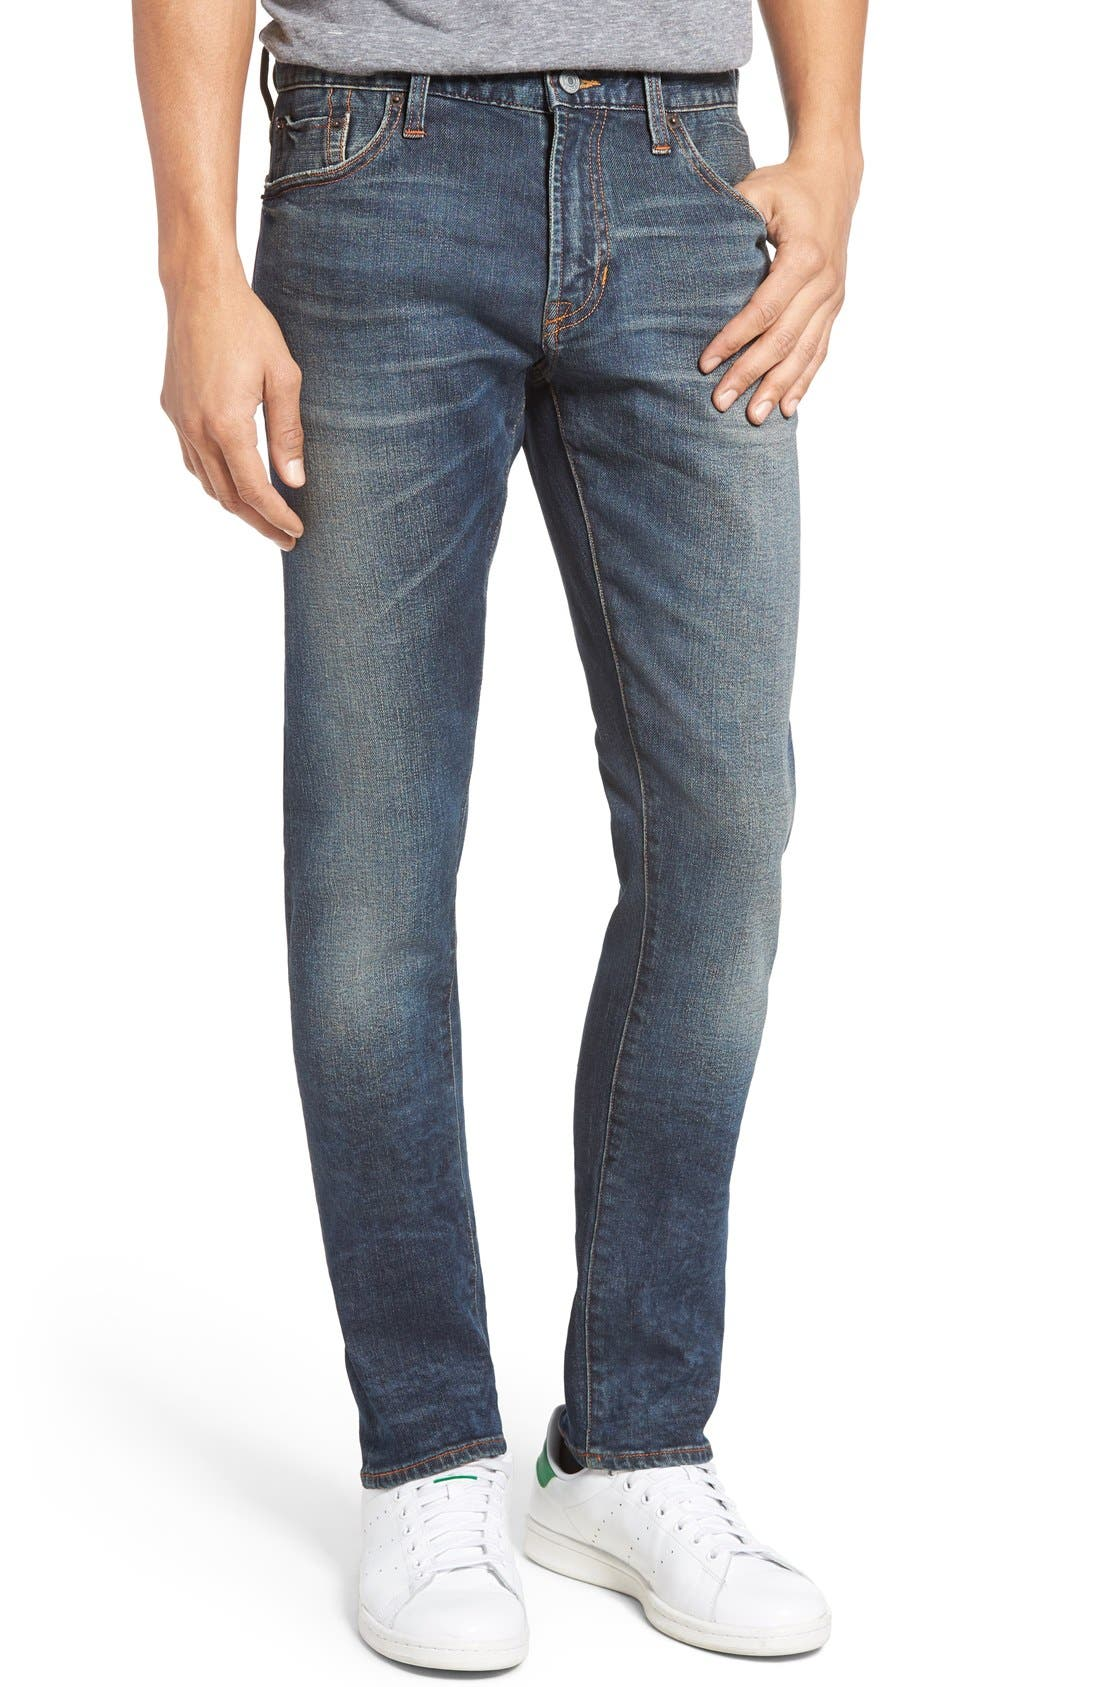 JEAN SHOP Jim Slim Fit Selvedge Jeans